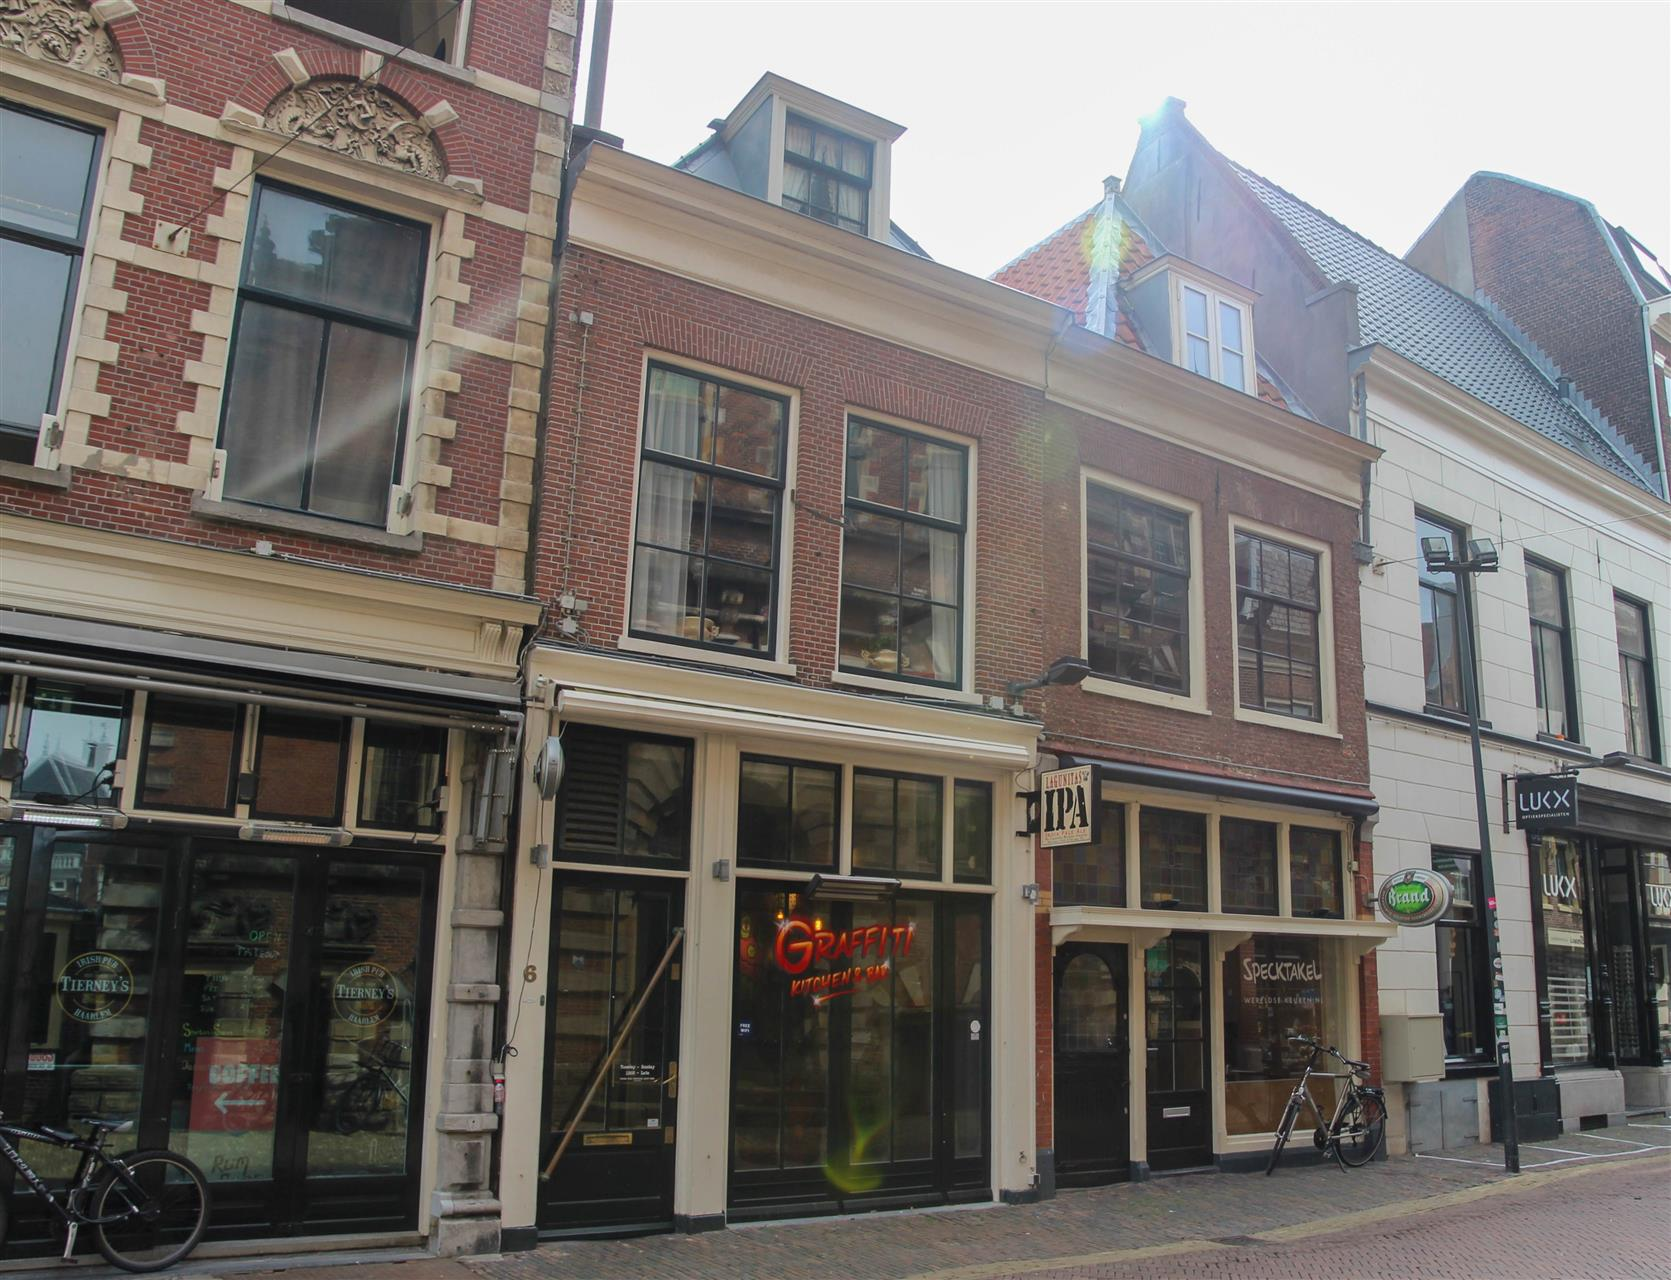 Spekstraat 6